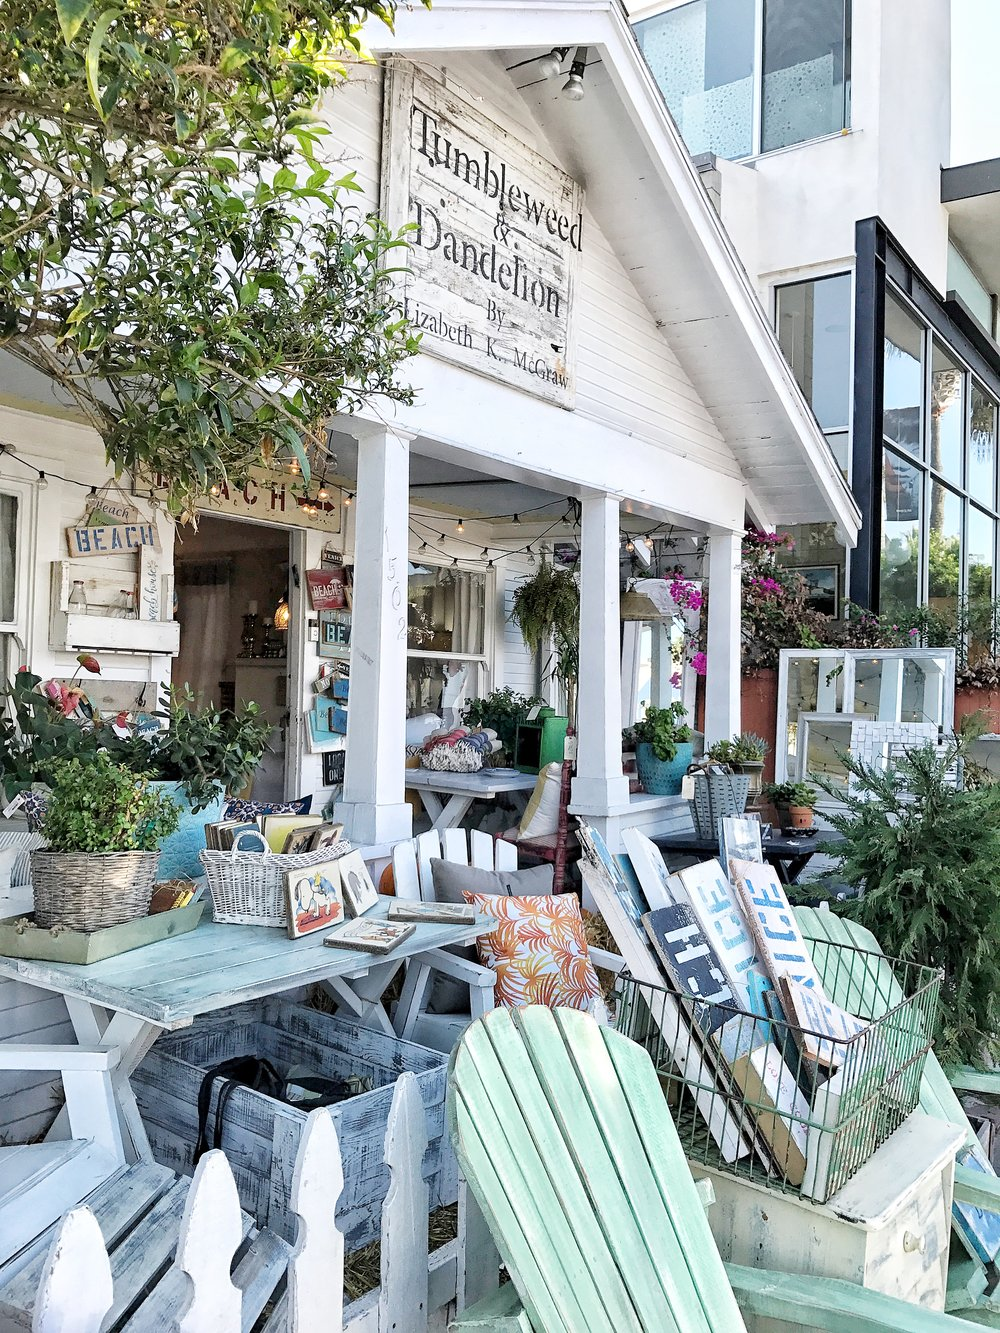 Home Decor shop in Abbot Kinney